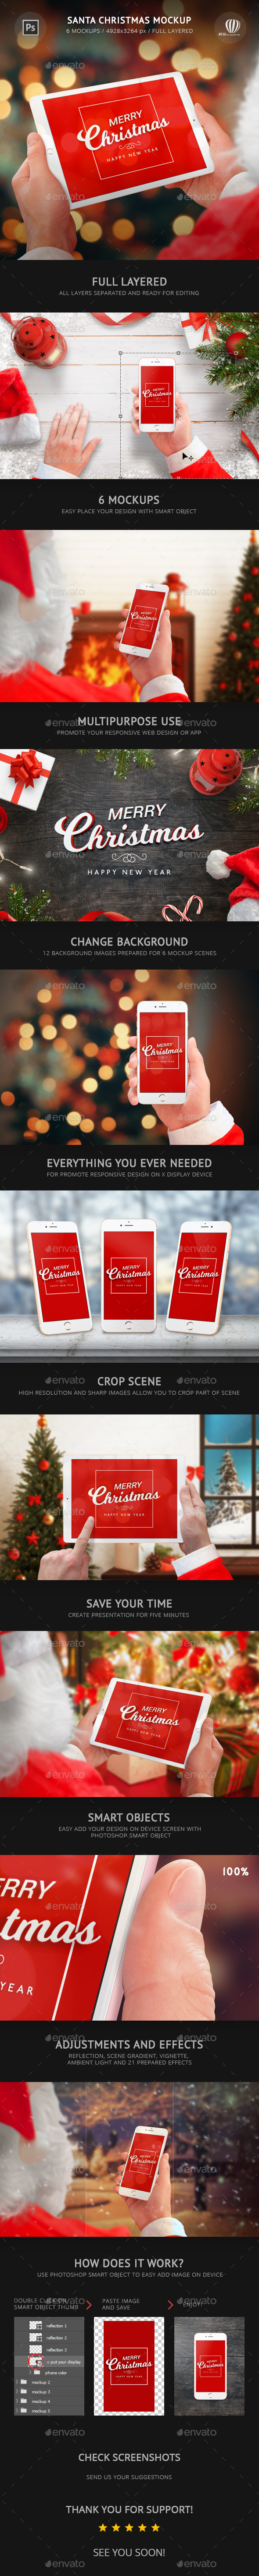 Santa Christmas Mockup - Mobile Displays